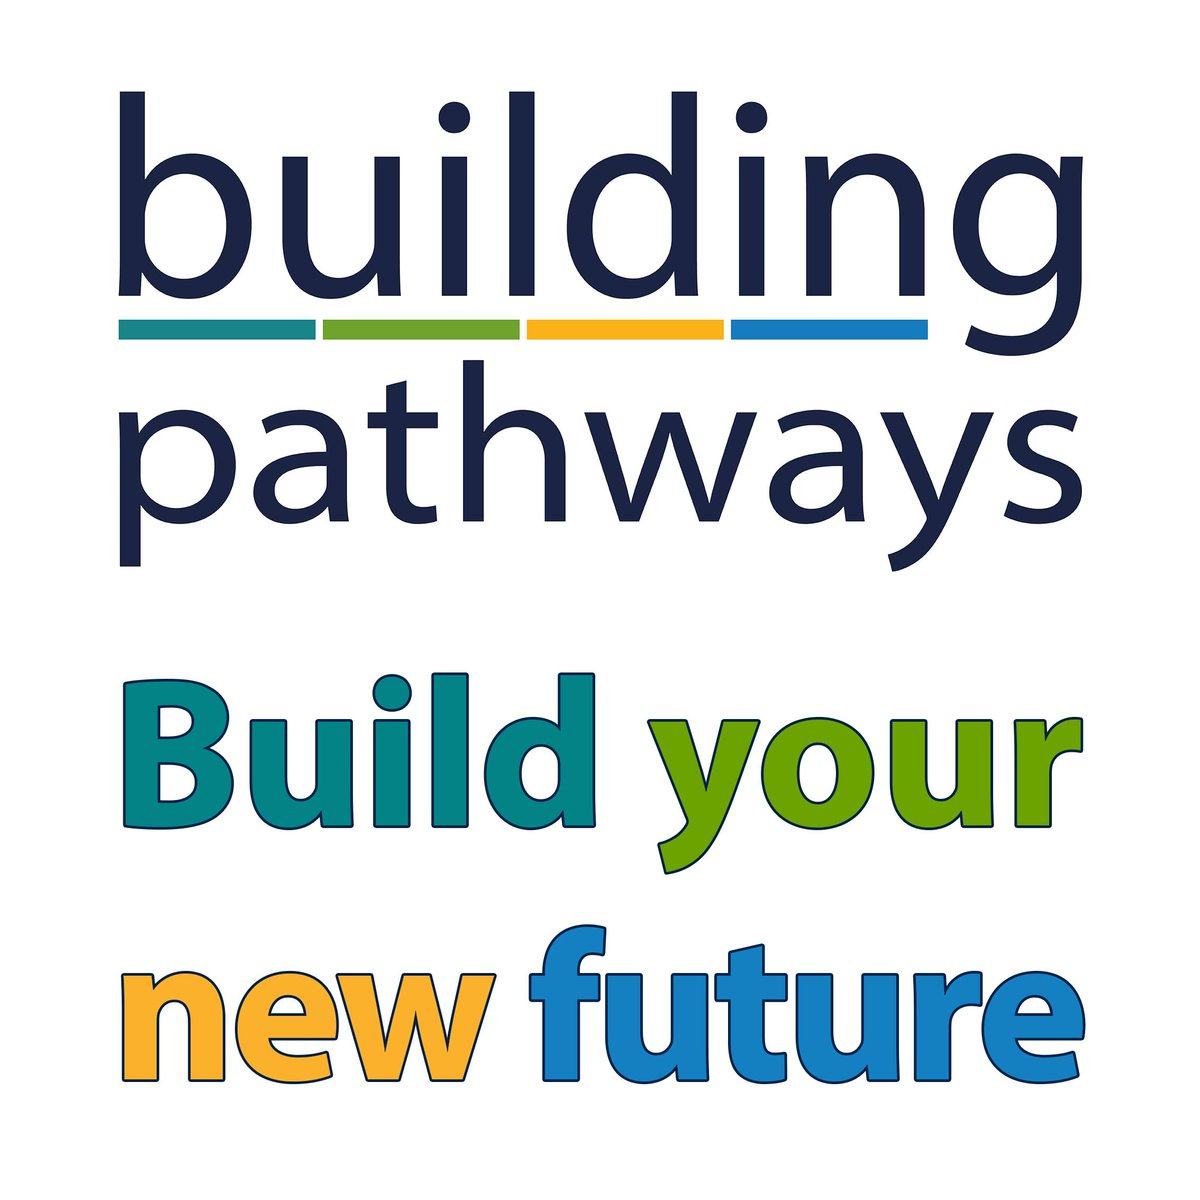 Join us TONIGHT at 8pm for a FREE online talk with Julien Dixon, Key Account Manager for A & E Elkins and start building your new future.  https://t.co/gPo4E2QEWl  #ConstructionCareers #BuildingPathways #LoveConstruction #Mentoring #Training #CareerGuidance #News